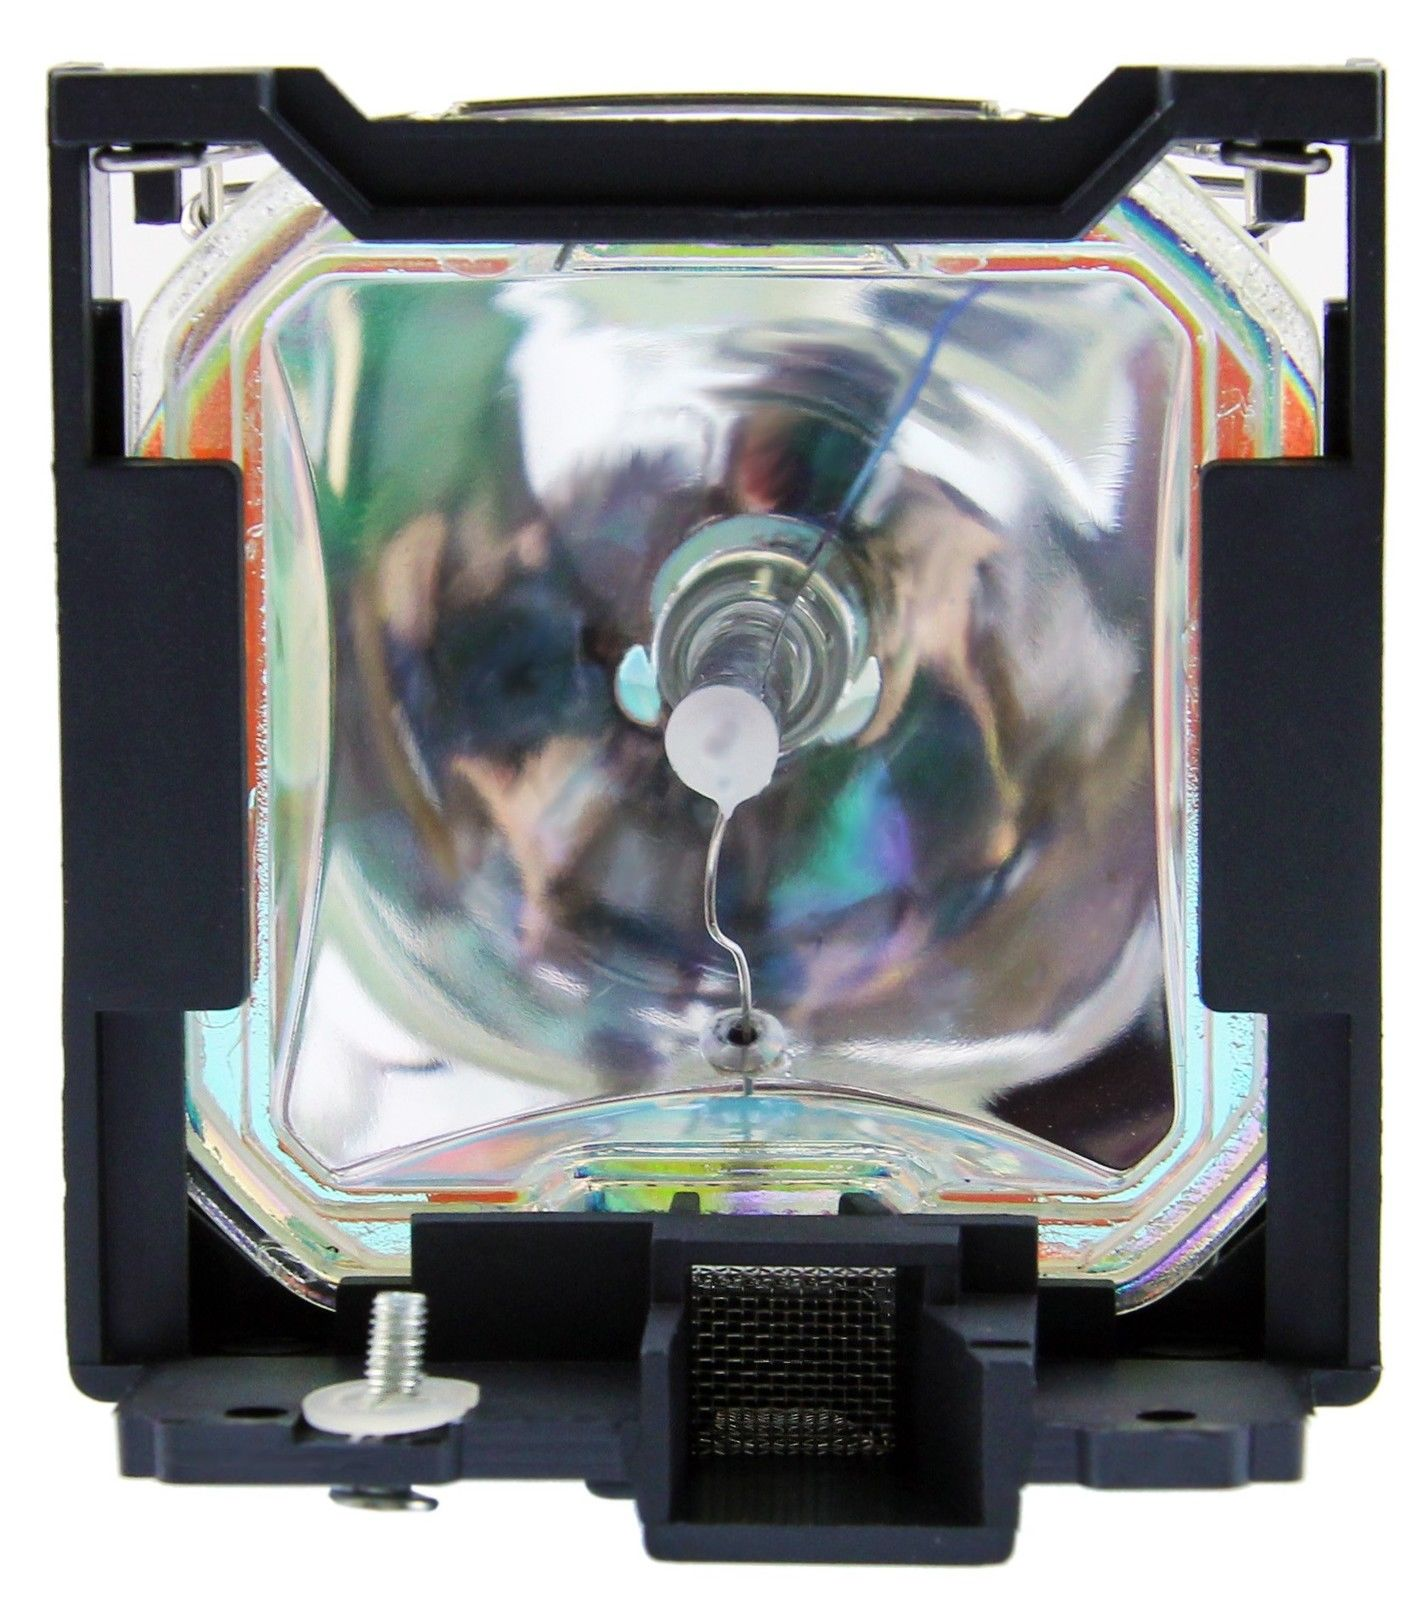 ET-LA785 ETLA785 LA785 For Panasonic PT-L785 L785 PT-L785E L785E PT-L785U L785U Projector Lamp Bulb with housing projector lamp bulb et lap770 etlap770 lap770 for panasonic pt px770 pt px770nt pt px760 pt px860 pt 870ne with housing